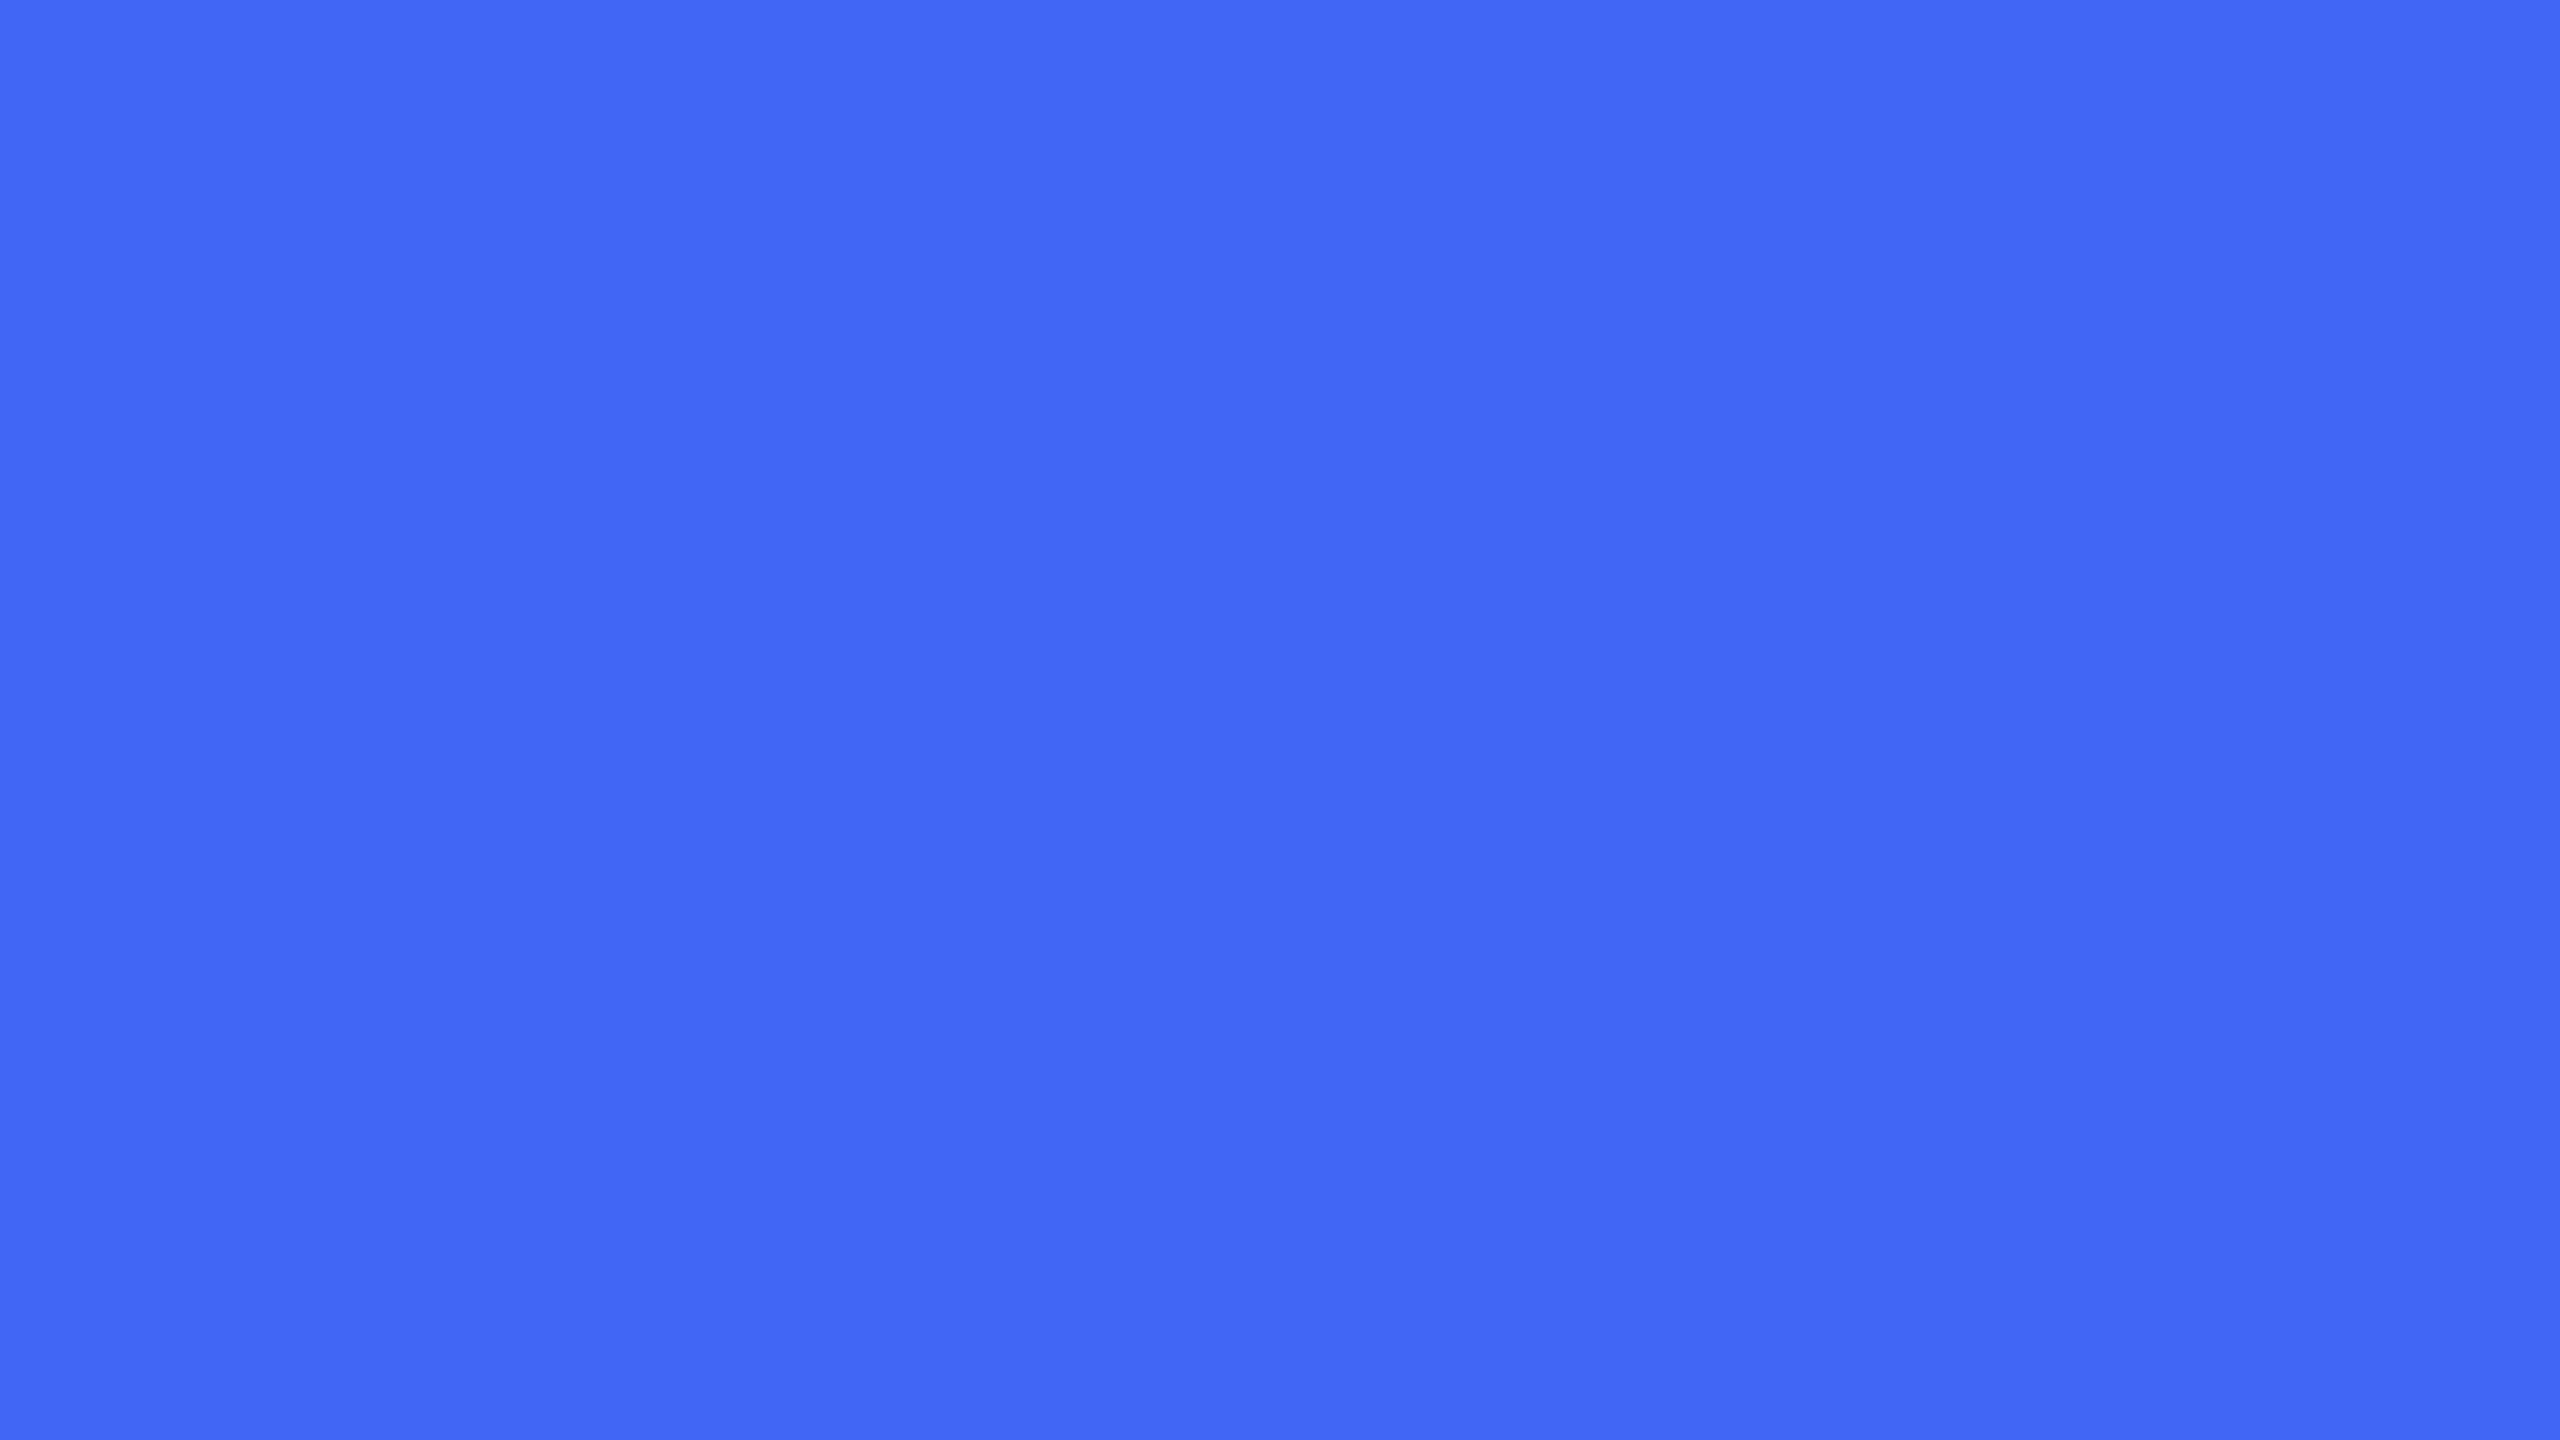 2560x1440 Ultramarine Blue Solid Color Background 2560x1440